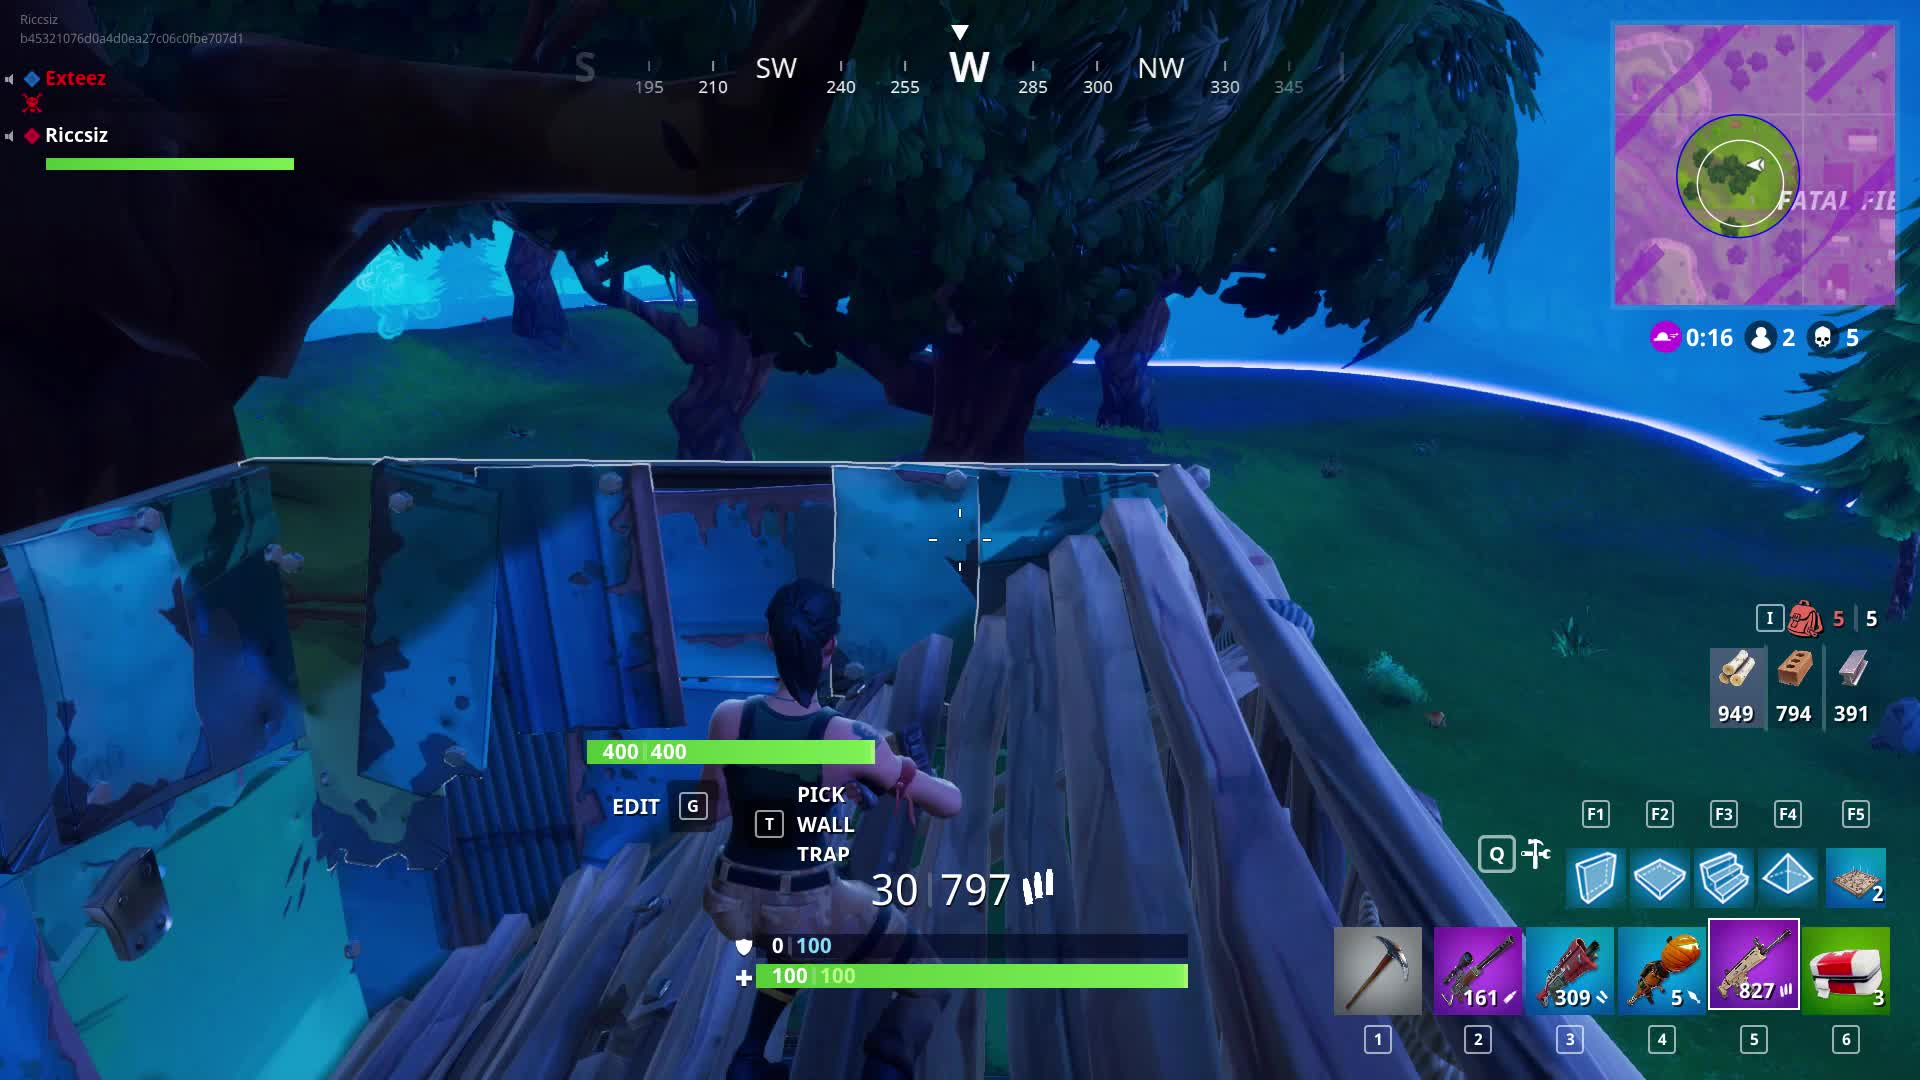 FortniteSupriseWin GIFs